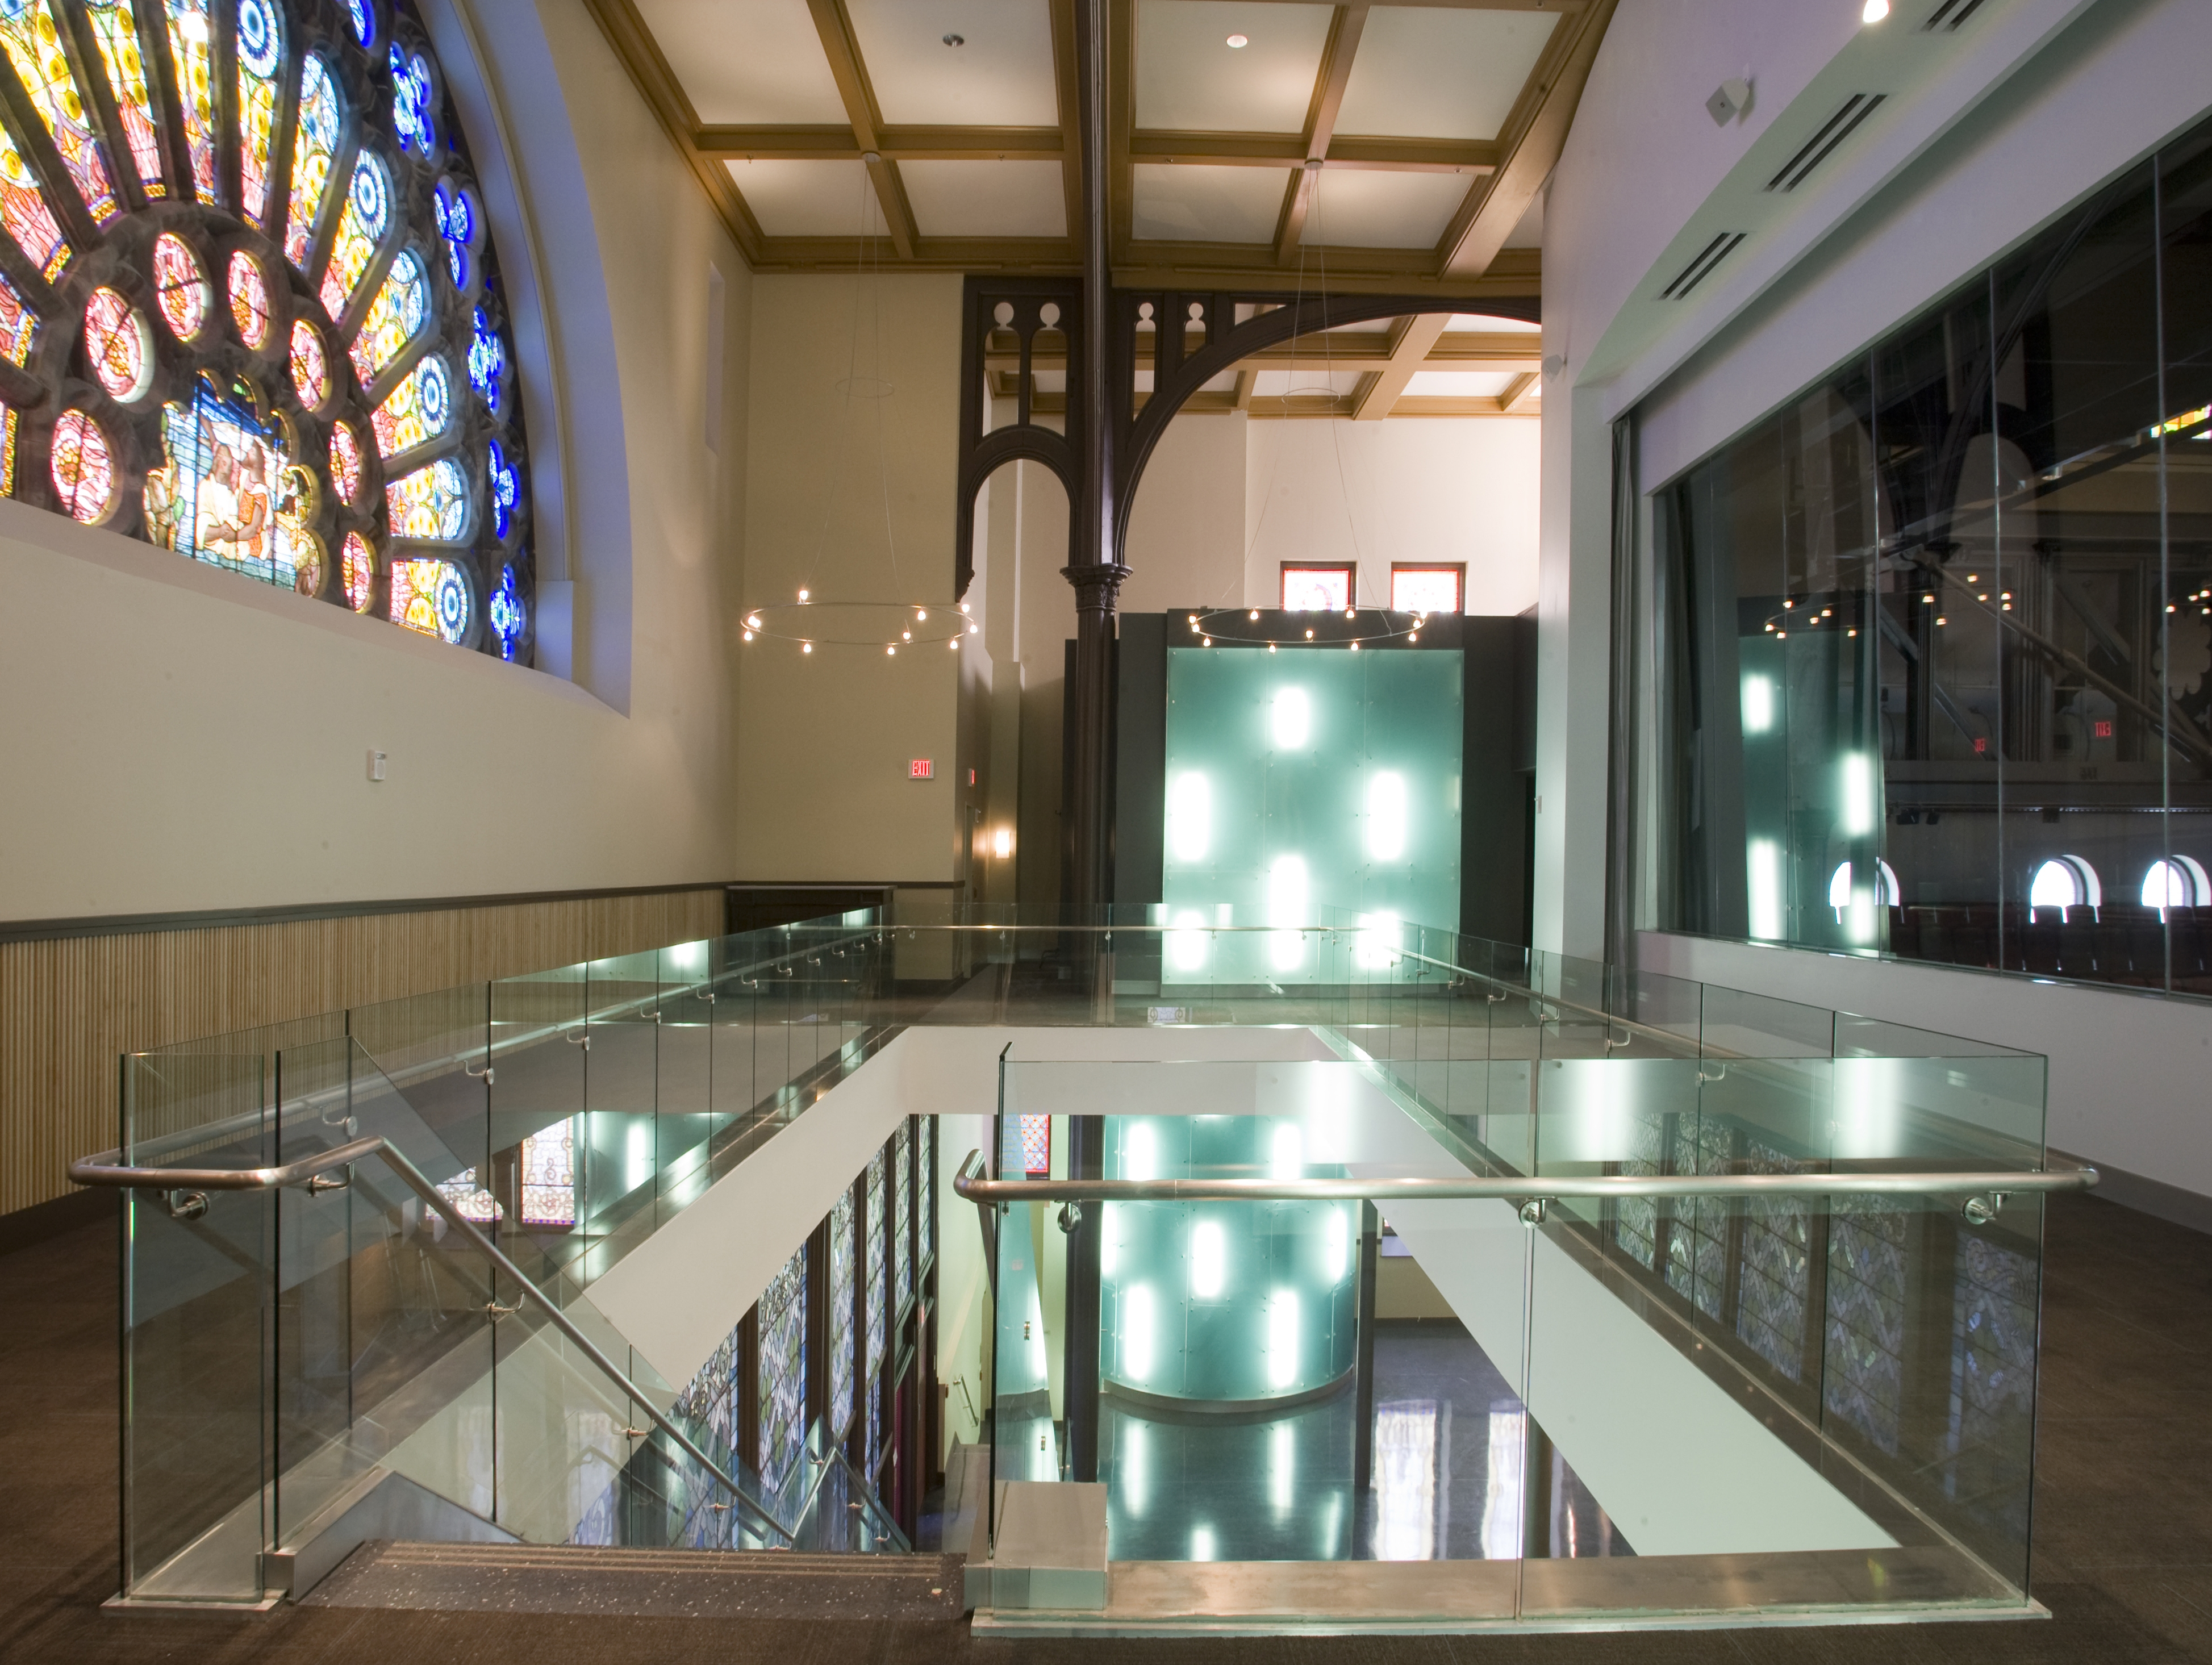 Performance hall second floor lobby with large stained glass window